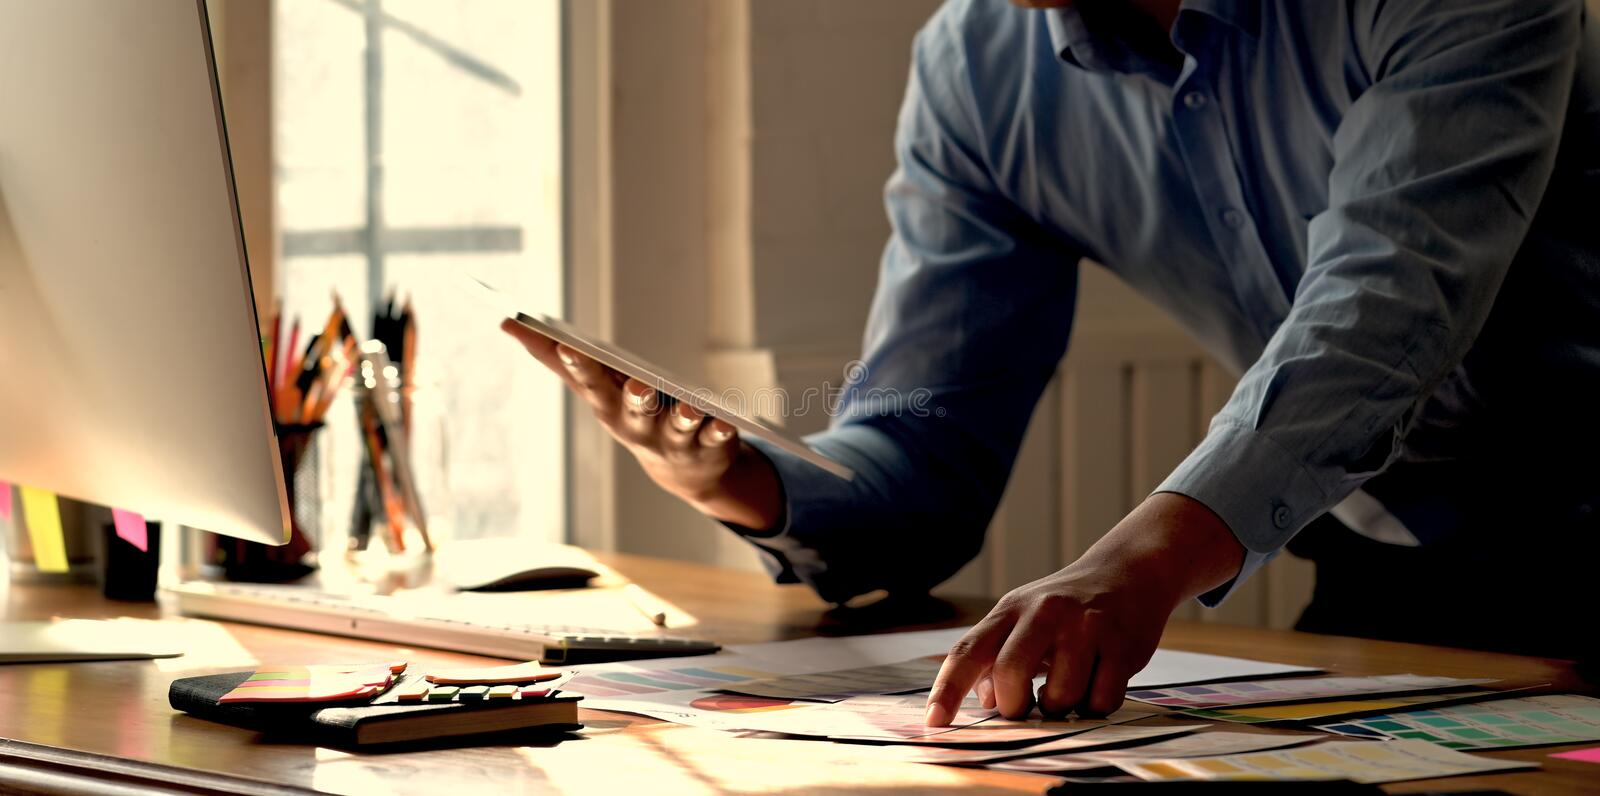 Creative graphic designer working with tablet stock photos